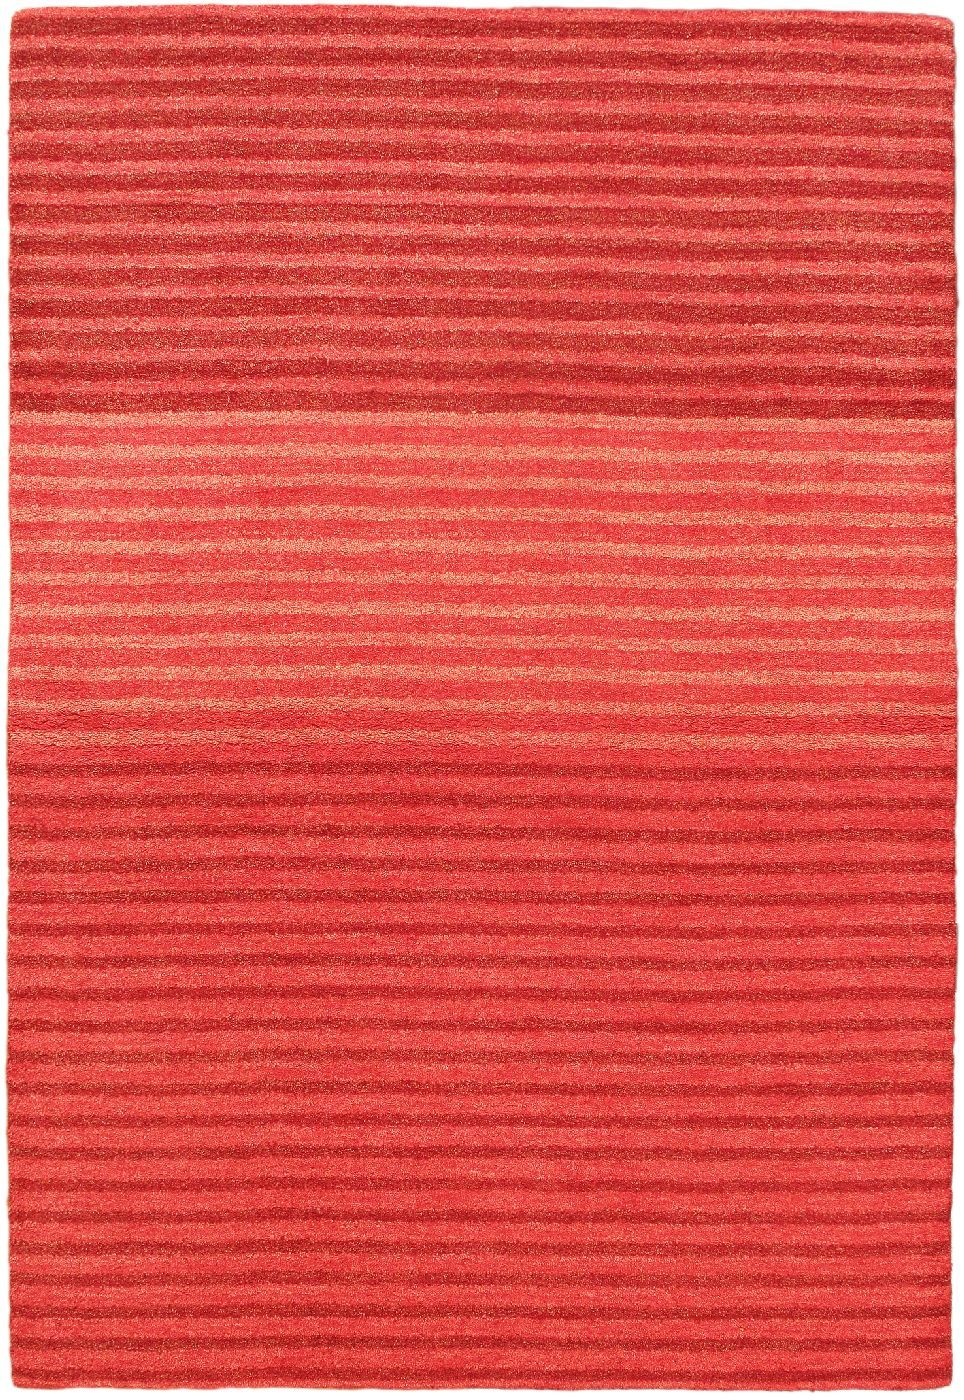 ecarpet gallery luribaft gabbeh riz solid/striped area rug collection